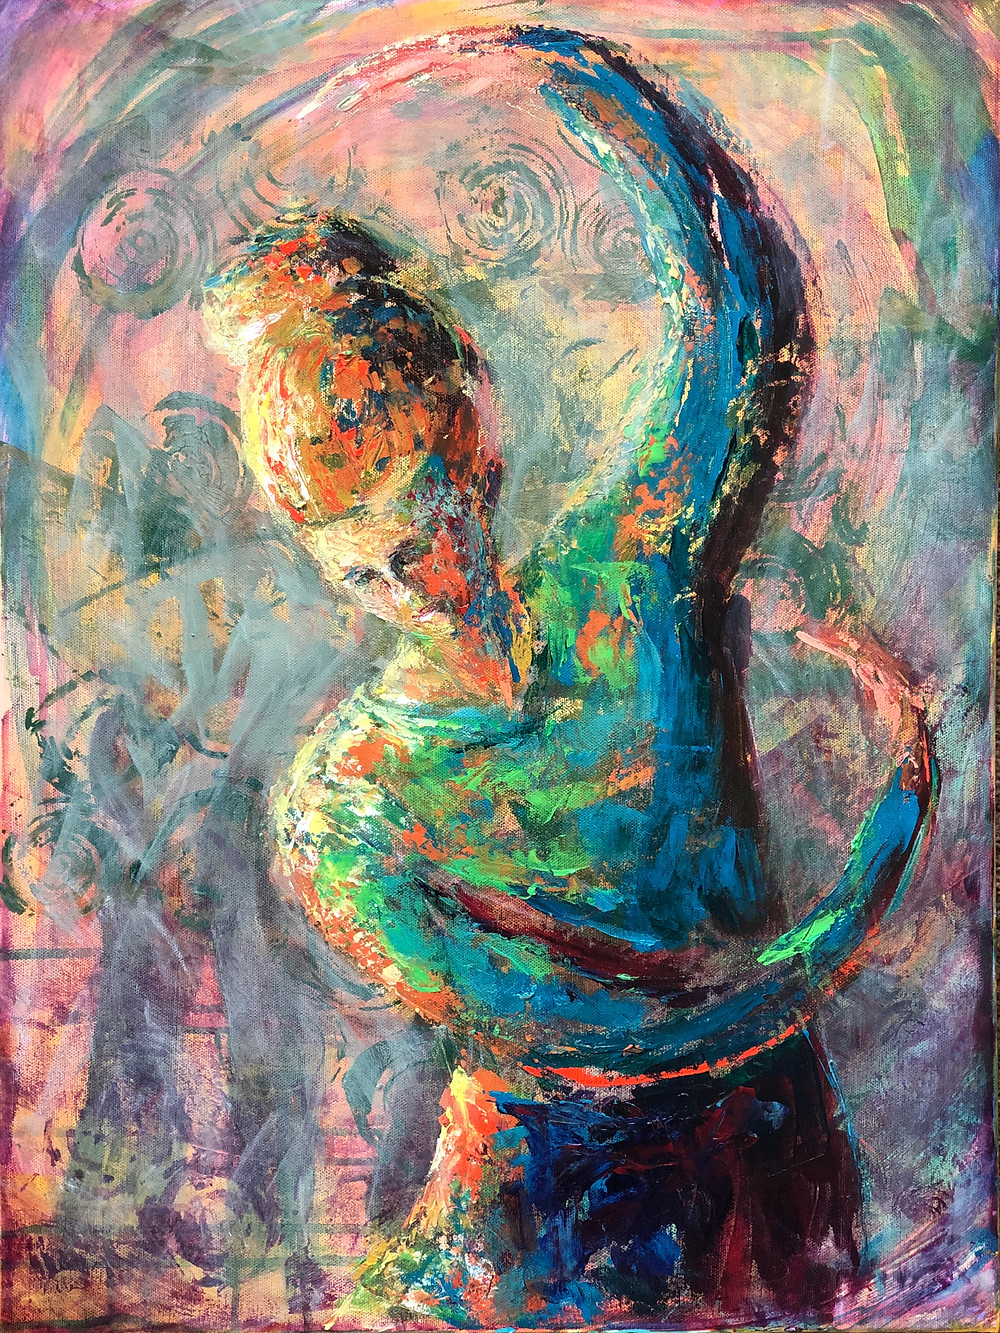 Impressionist style painting of a woman dancing